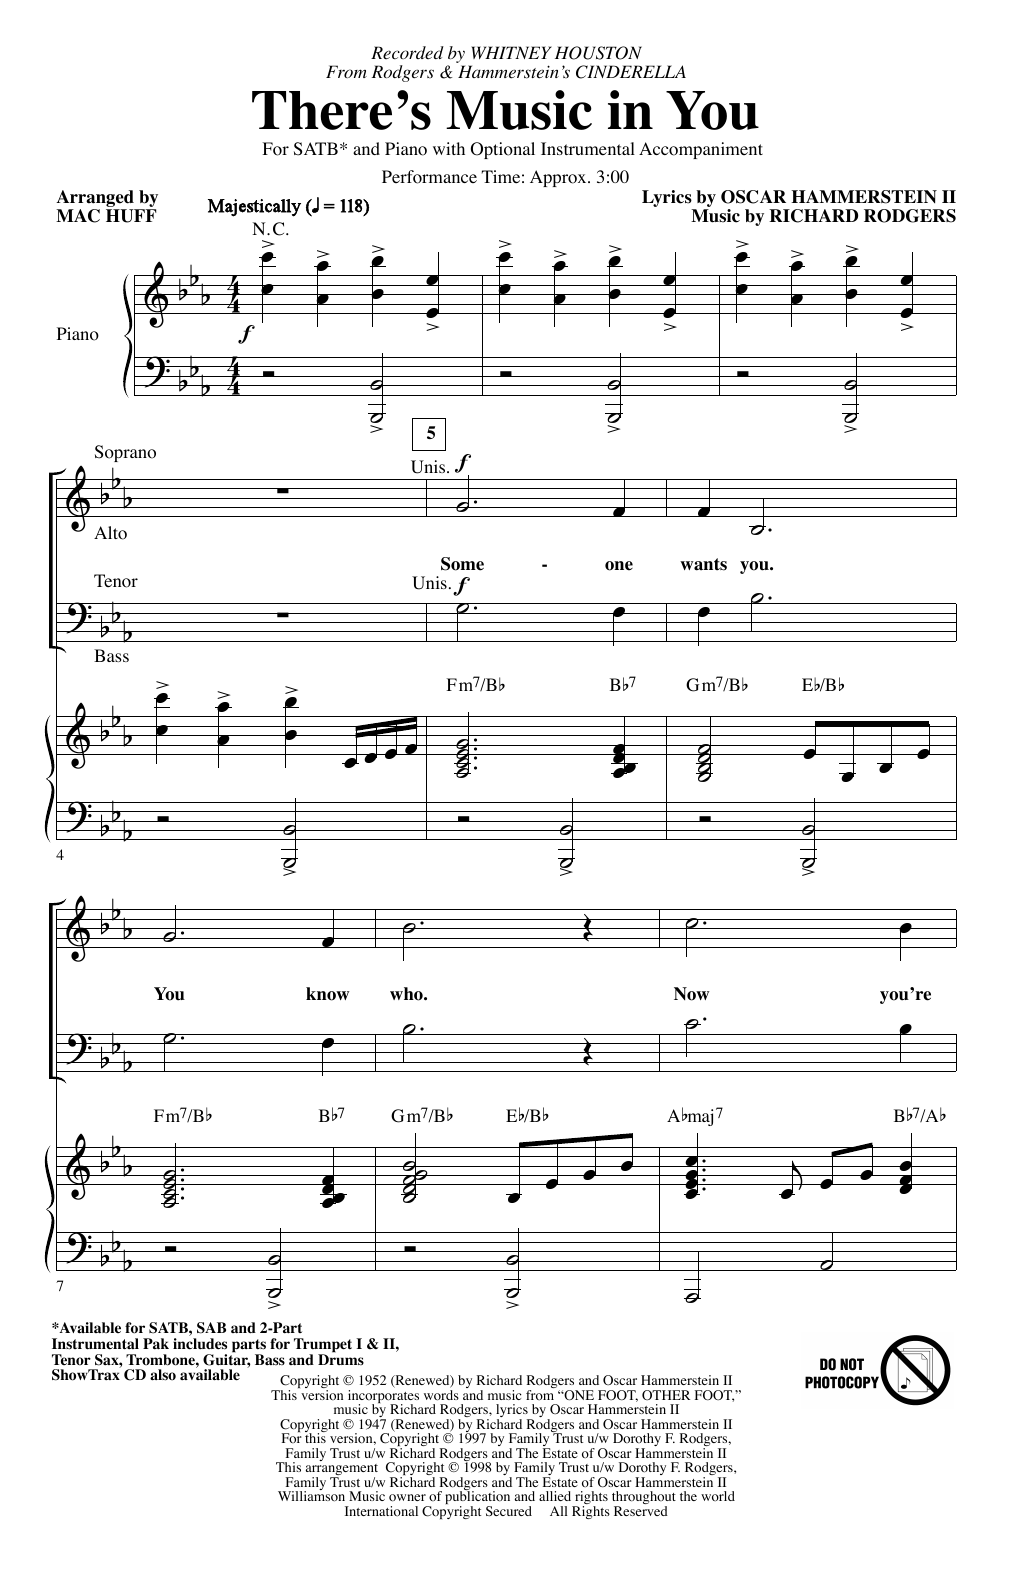 Whitney Houston There's Music In You (from Cinderella) (arr. Mac Huff) sheet music notes printable PDF score